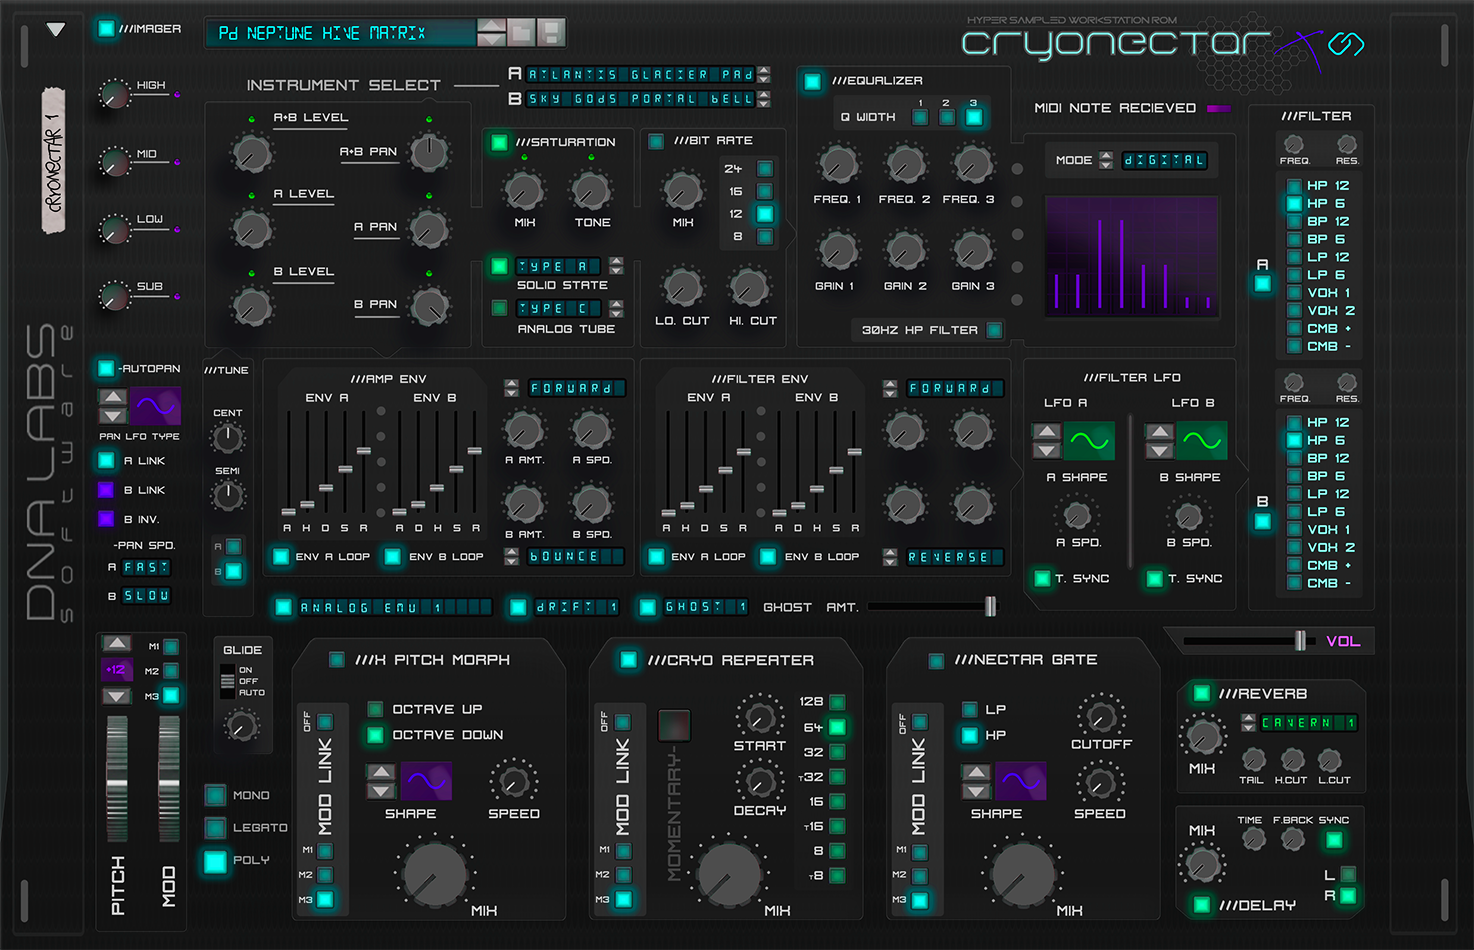 CRYONECTAR X HYPER SAMPLED WORKSTATION     Cryonectar is a hyper-sampled wave based synthesizer/rompler with creative new effects such as the x pitch morph, cryo repeater, and nectar gate which promise to surprise the end user with creative new ways of sound modulation.  Status: Currently In the Mockup creation stage. Colors may be changed. Knobs may be added or moved. Features may be added or removed.